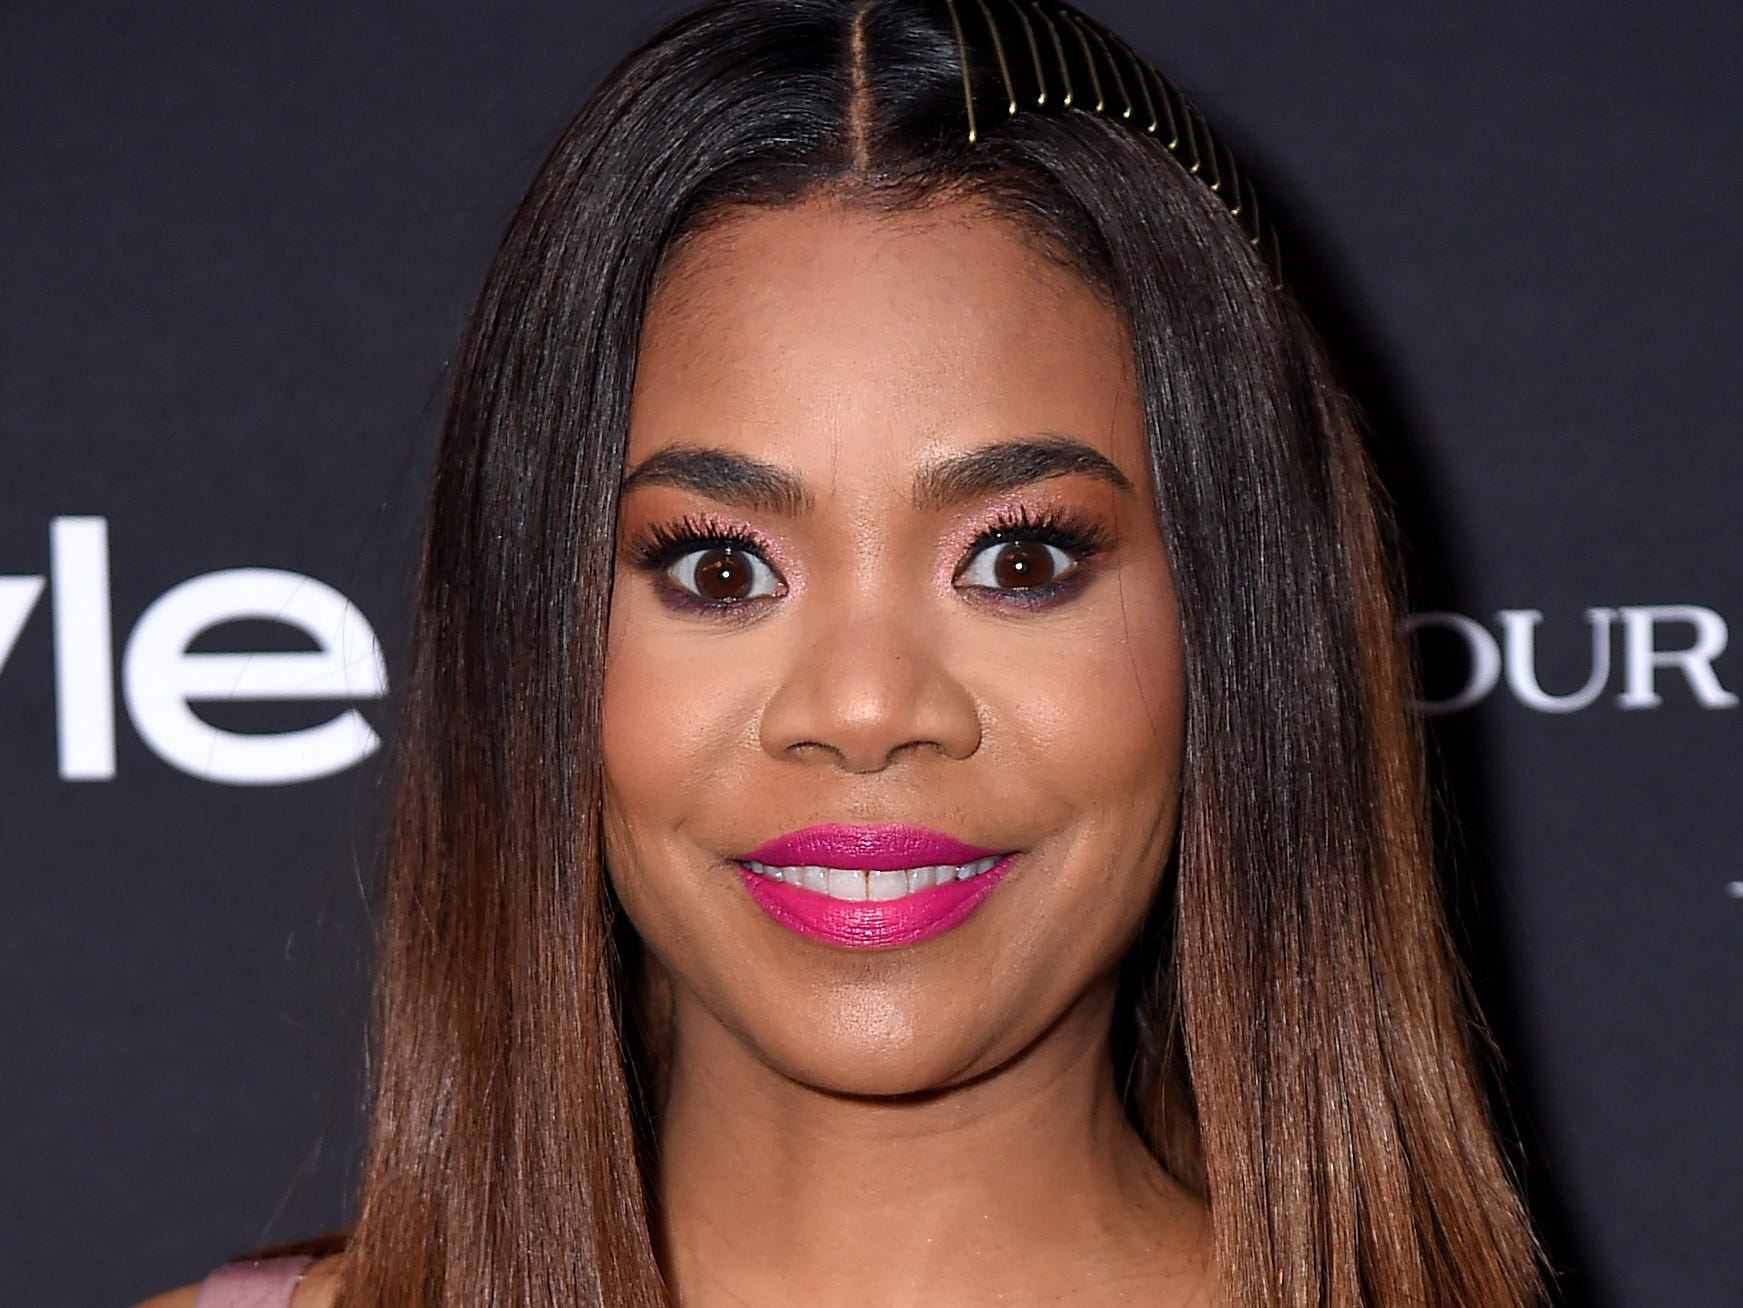 TORONTO, ON - SEPTEMBER 08:  Regina Hall attends The Hollywood Foreign Press Association and InStyle Party during 2018 Toronto International Film Festival at Four Seasons Hotel on September 8, 2018 in Toronto, Canada.  (Photo by Michael Loccisano/Getty Images,) ORG XMIT: 775218497 ORIG FILE ID: 1029630772